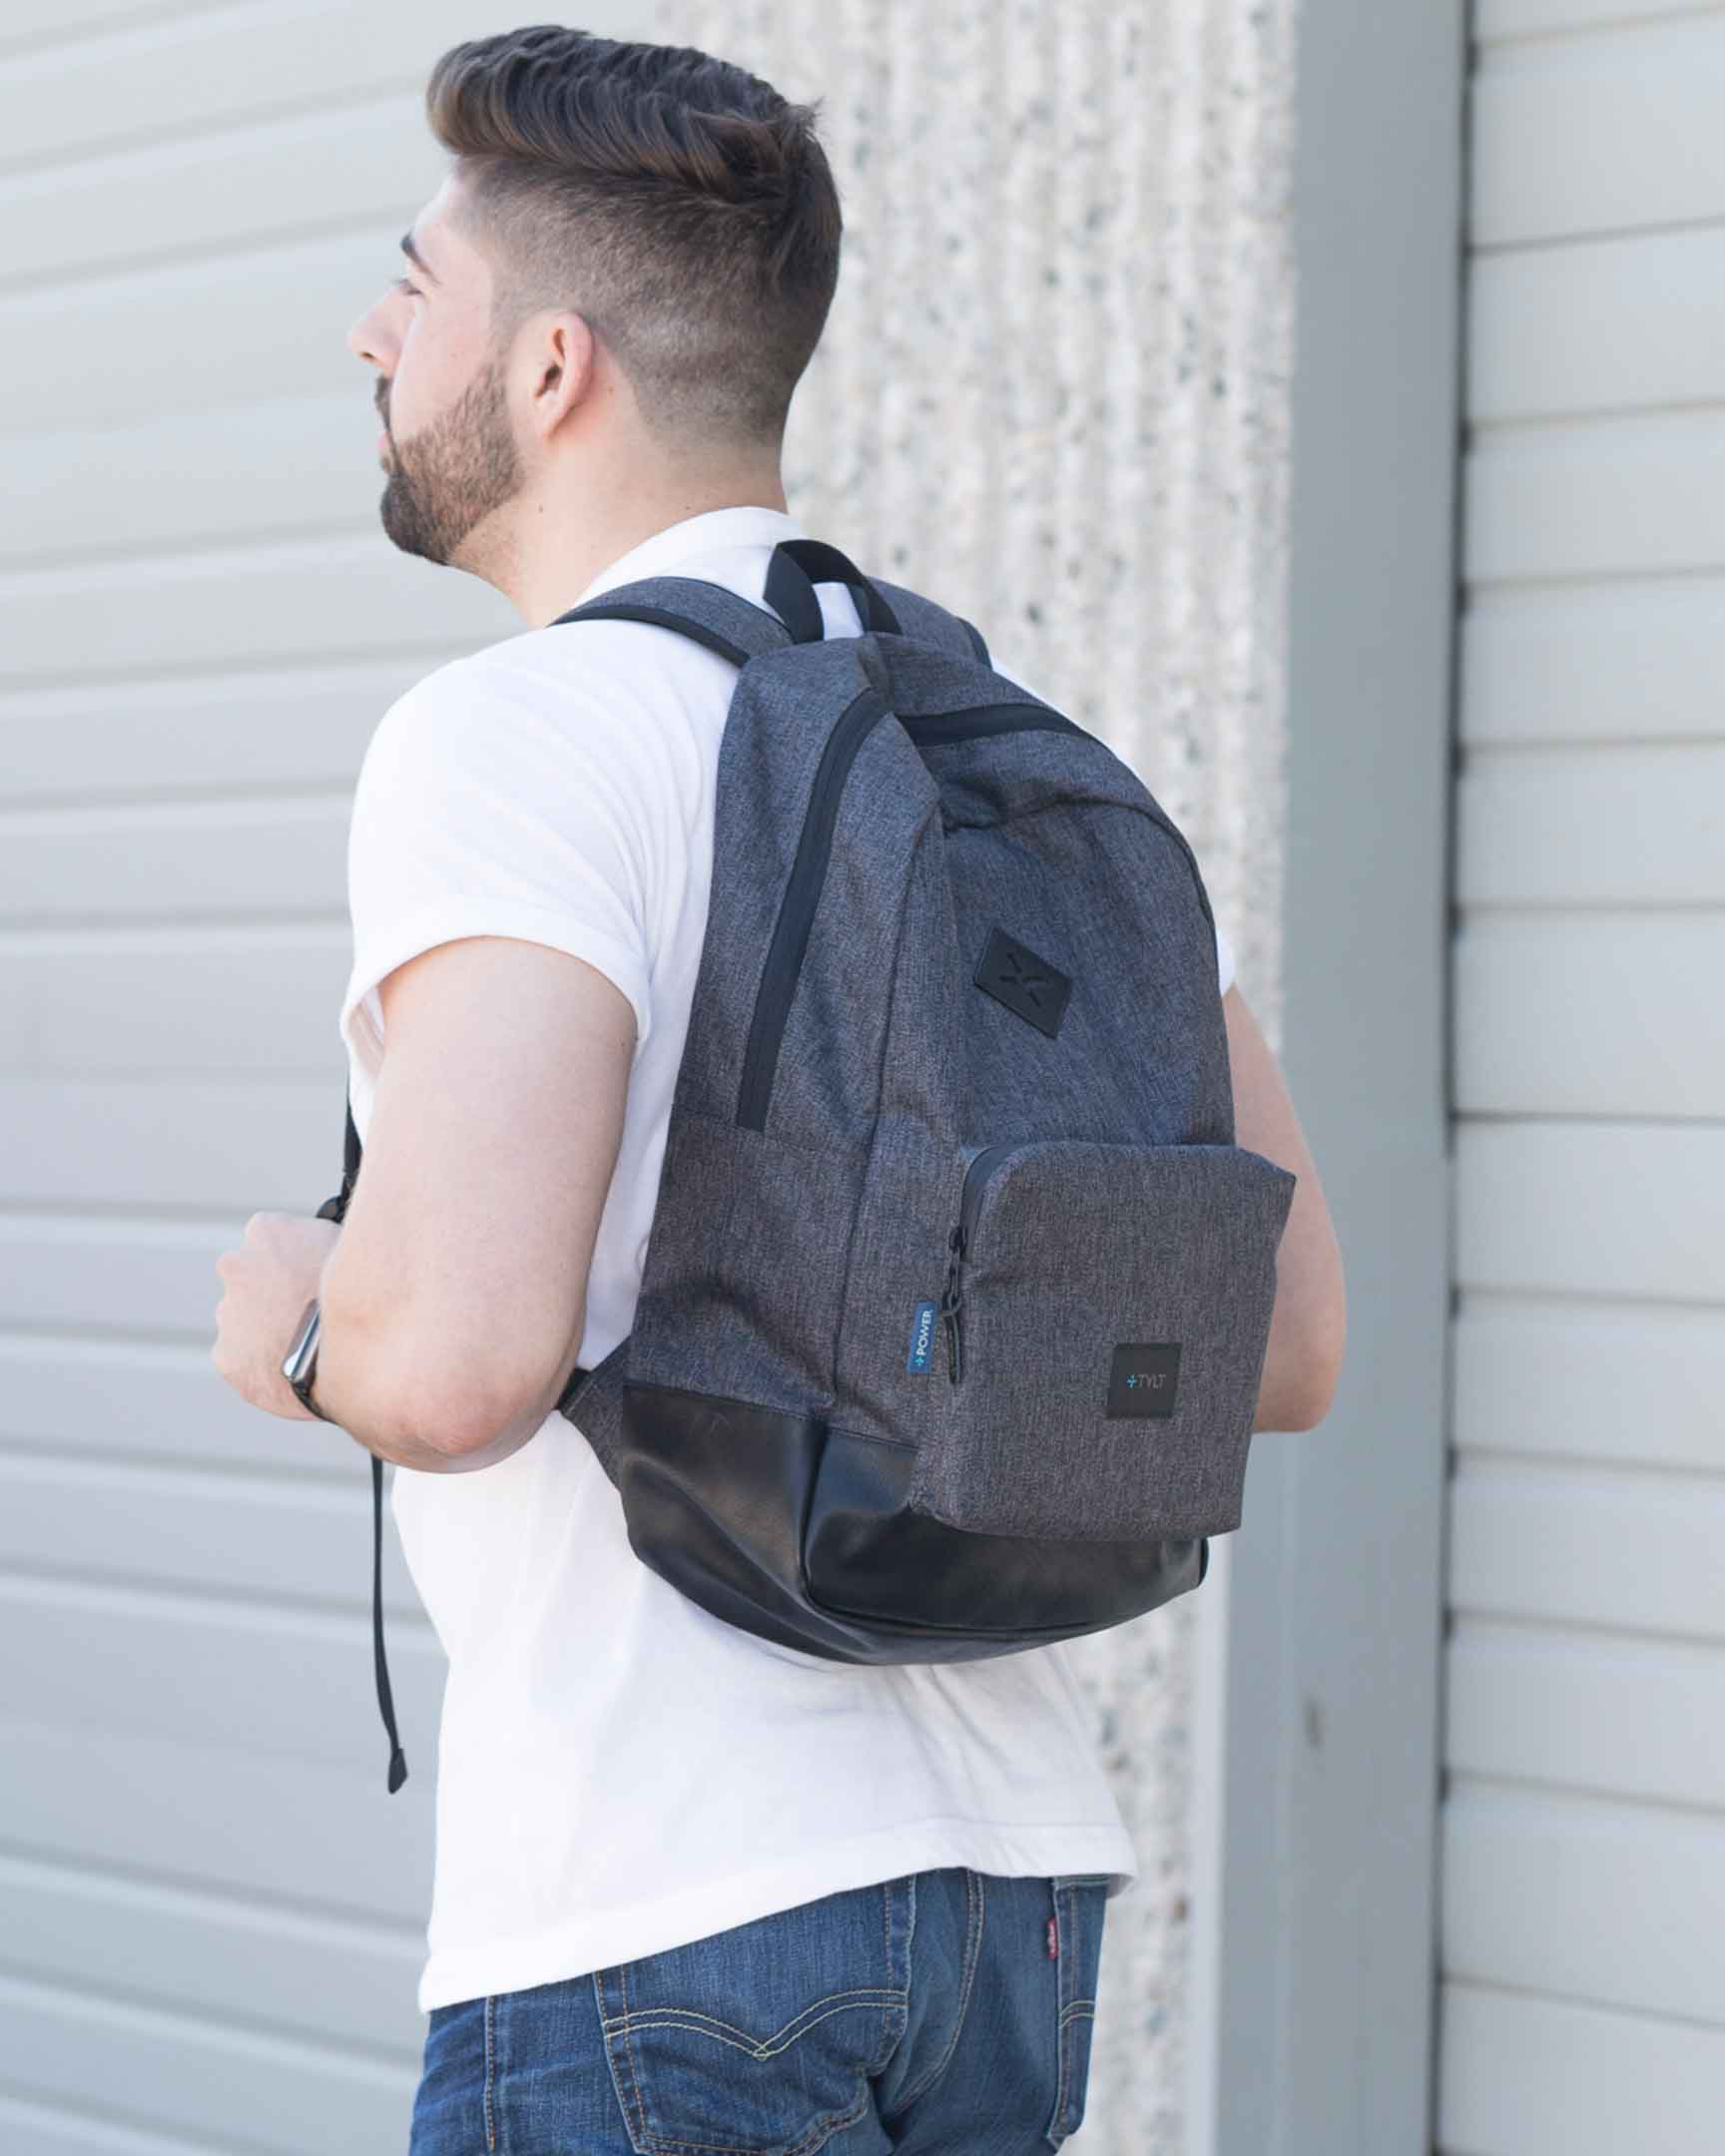 Man wearing the Active Power Bag